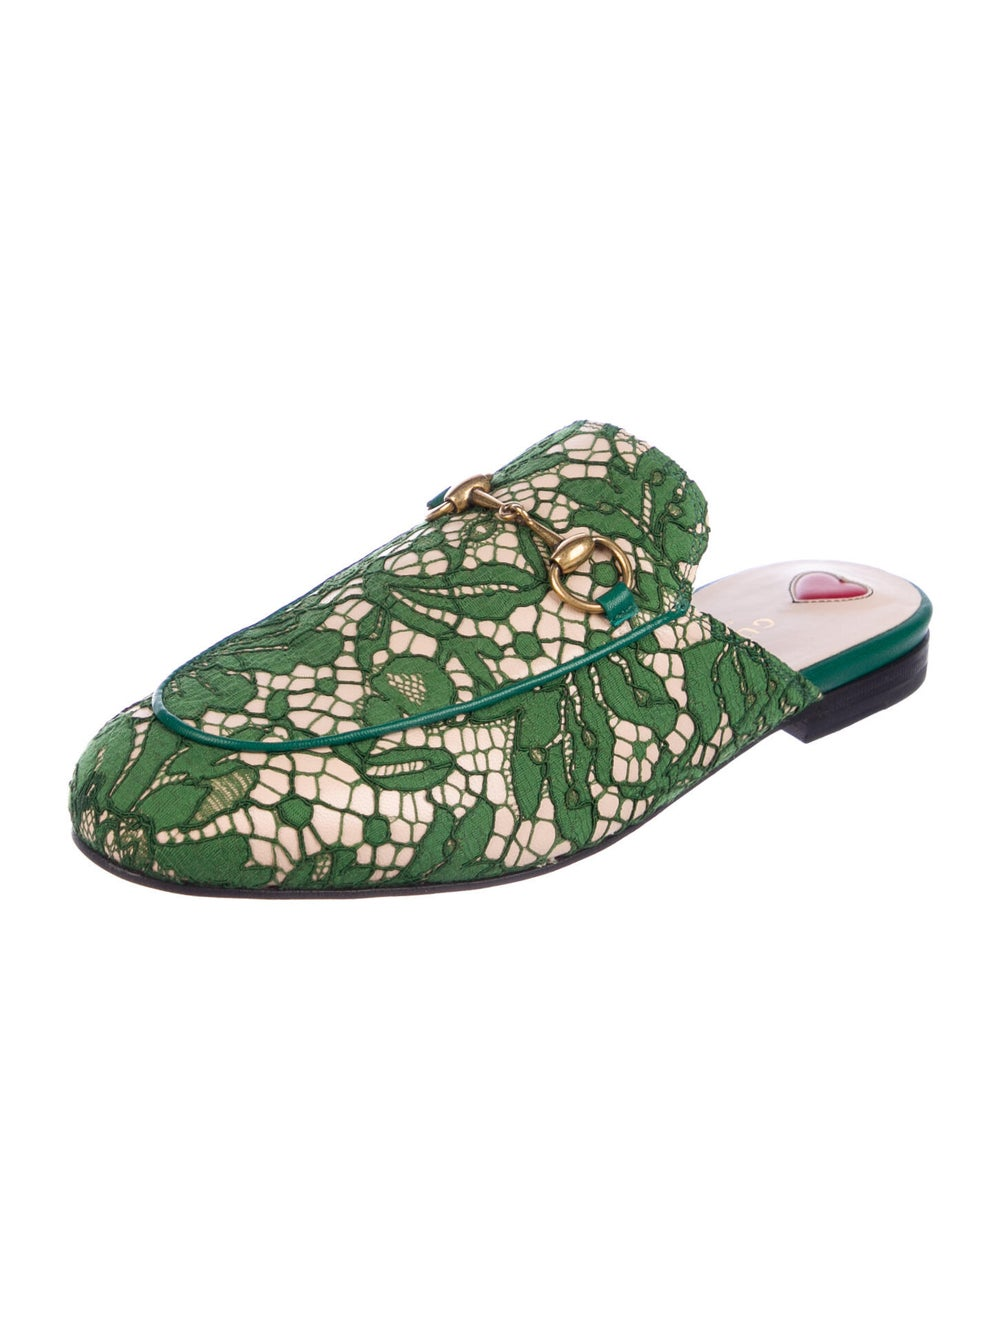 Gucci Princetown Horsebit Accent Mules Green - image 2